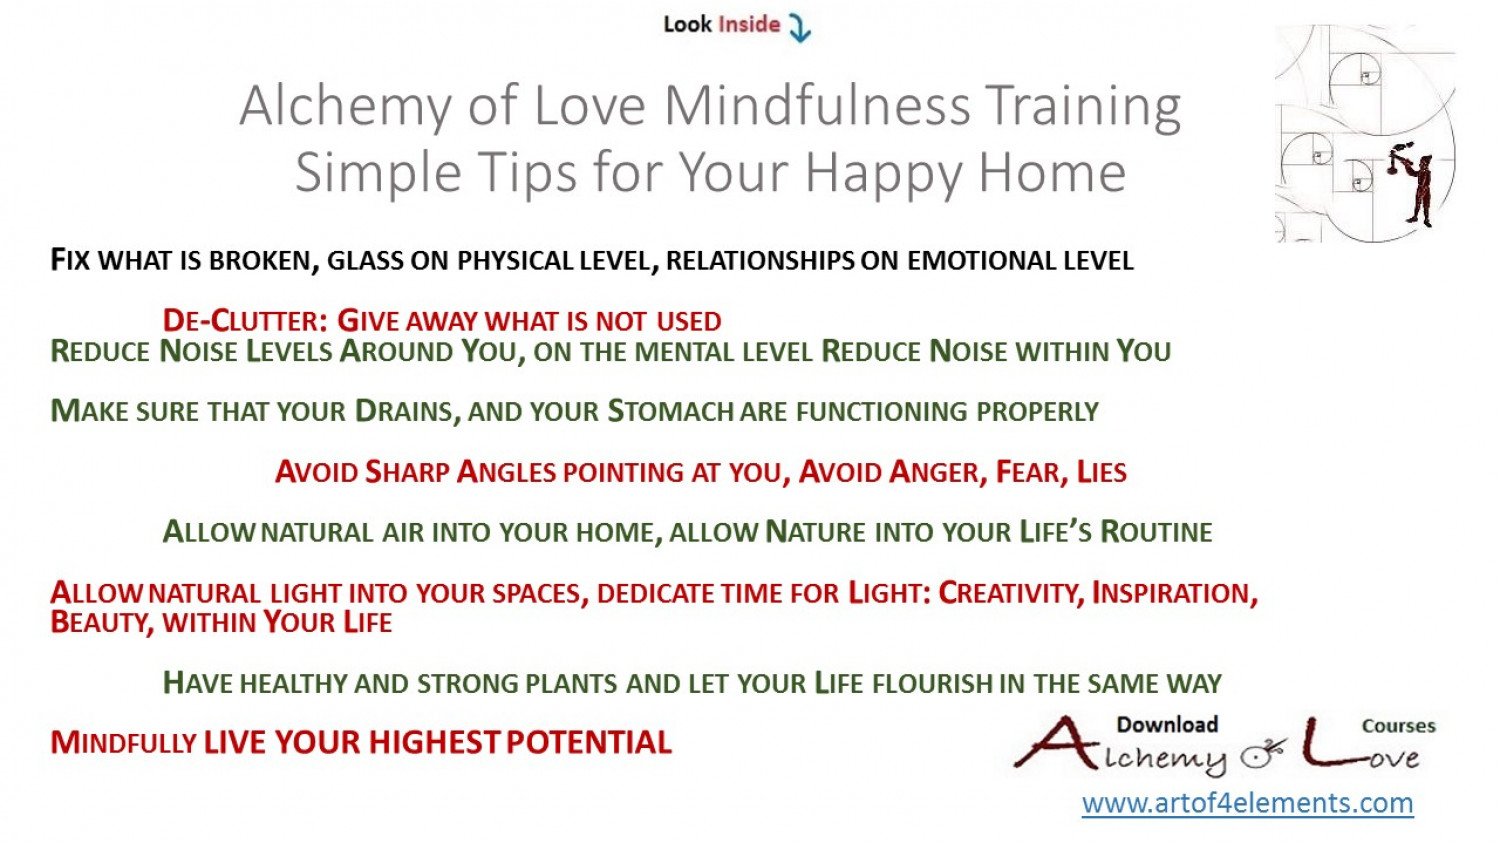 infographic feng shui. 7 Simple Feng Shui Mindfulness Tips For Happy Home Infographic I